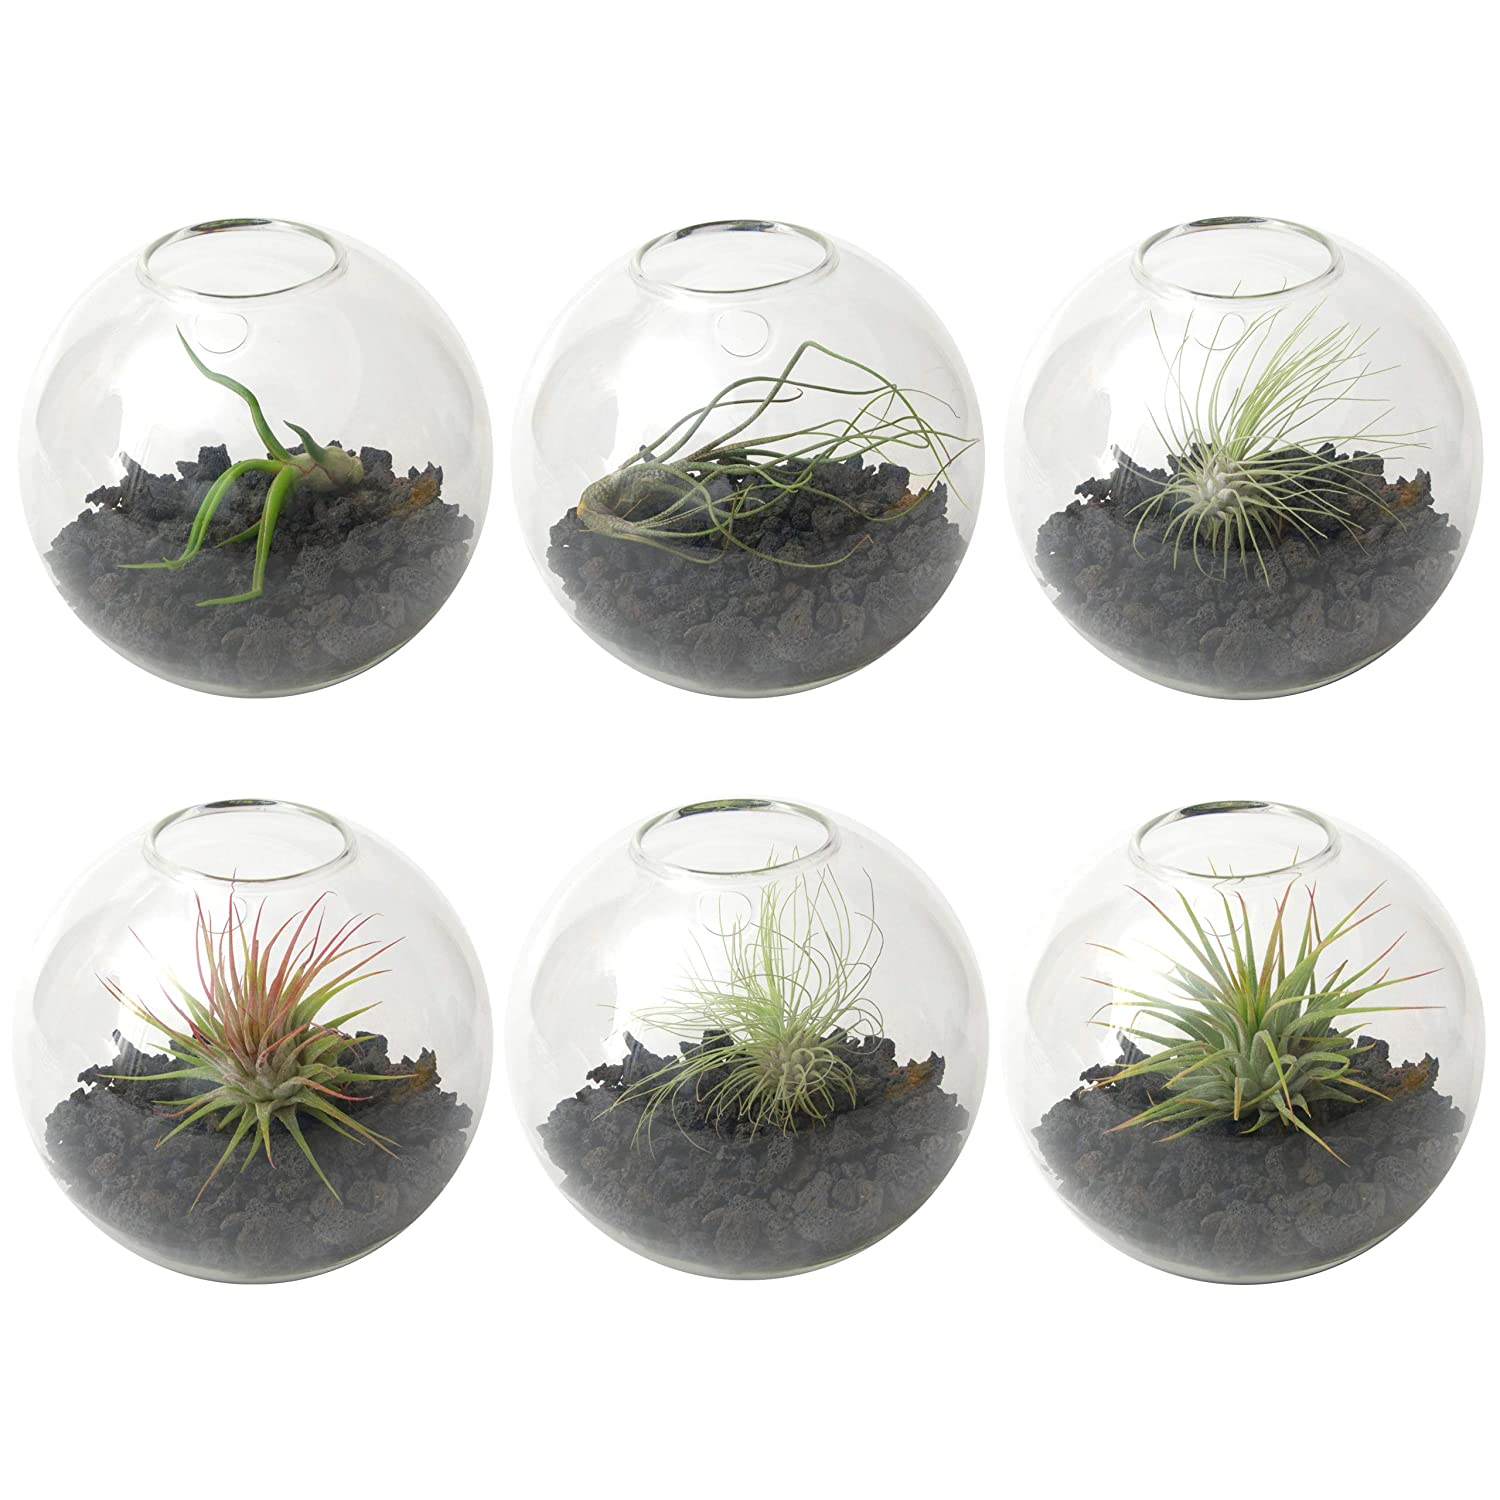 Wall Planter 6-Pack – Terrarium Kit for Hanging Plants Succulents – use as Vertical Garden for Aesthetic Room Decor Outdoor Wall Decor